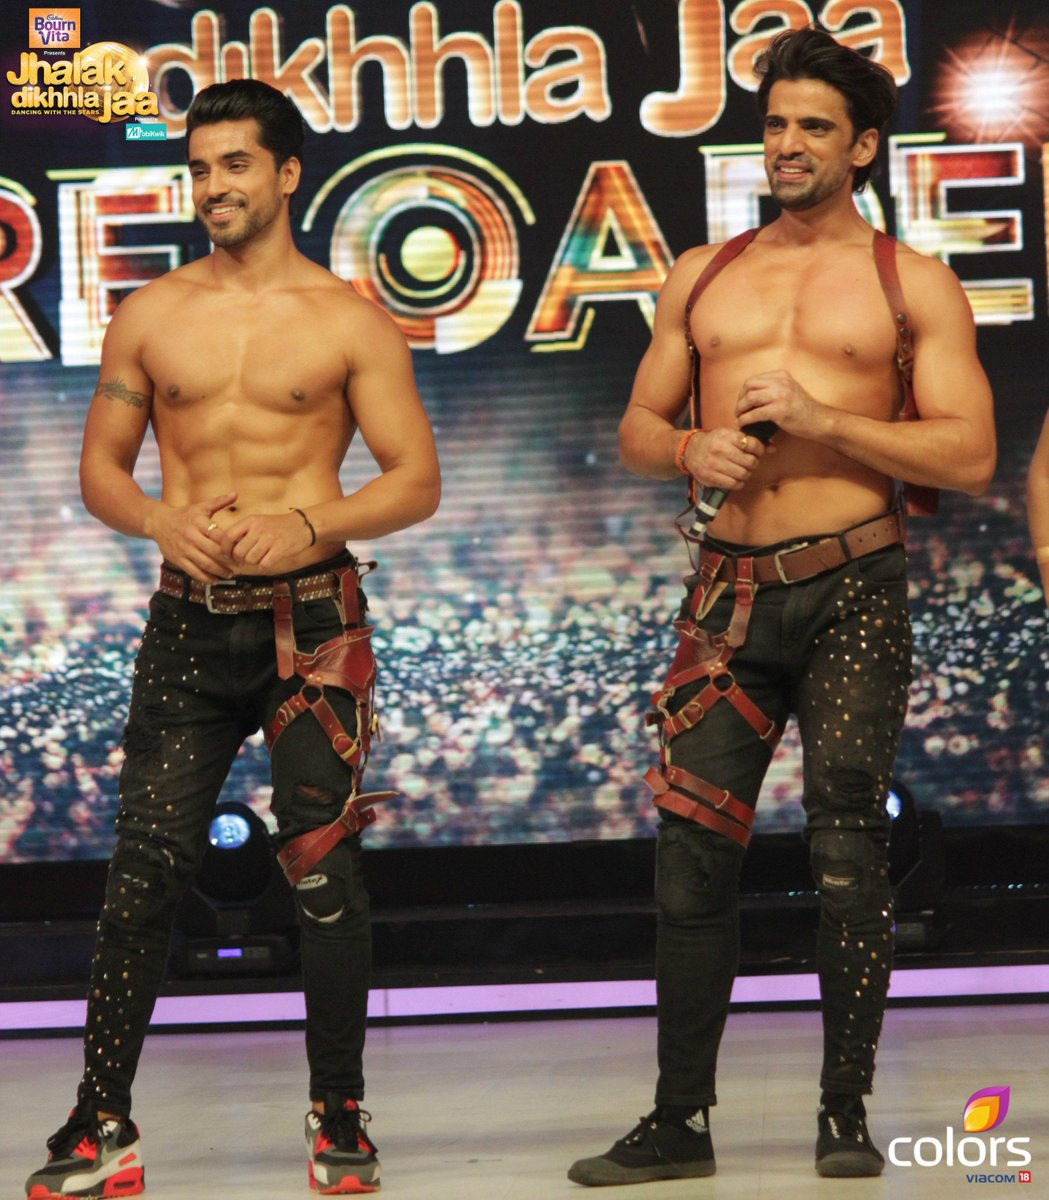 Gautam Gulati and Mohit Malik in Jhalak Dikhla Jaa 8 Reloaded